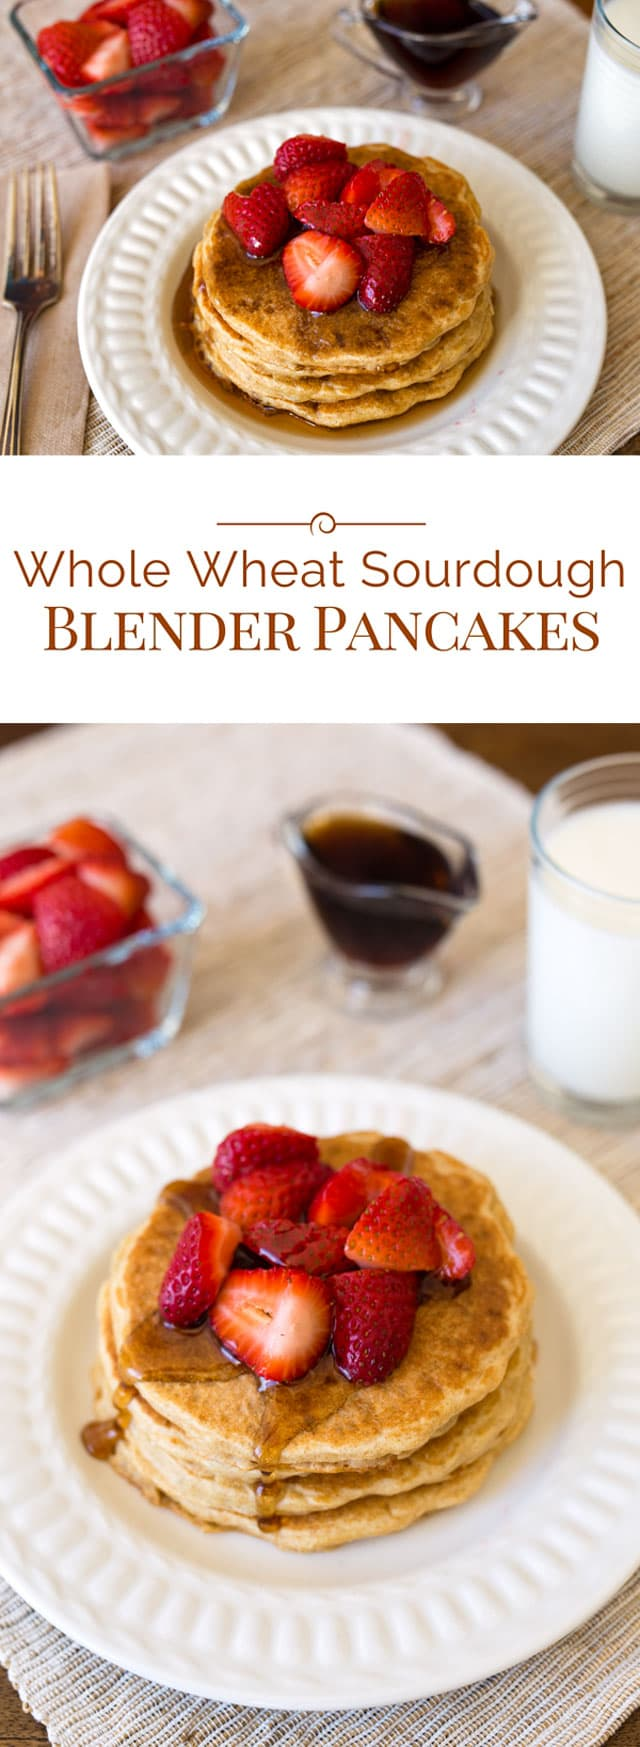 These Whole Wheat Sourdough Blender Pancakes are light and fluffy sourdough pancakes made with whole wheat pastry flour.